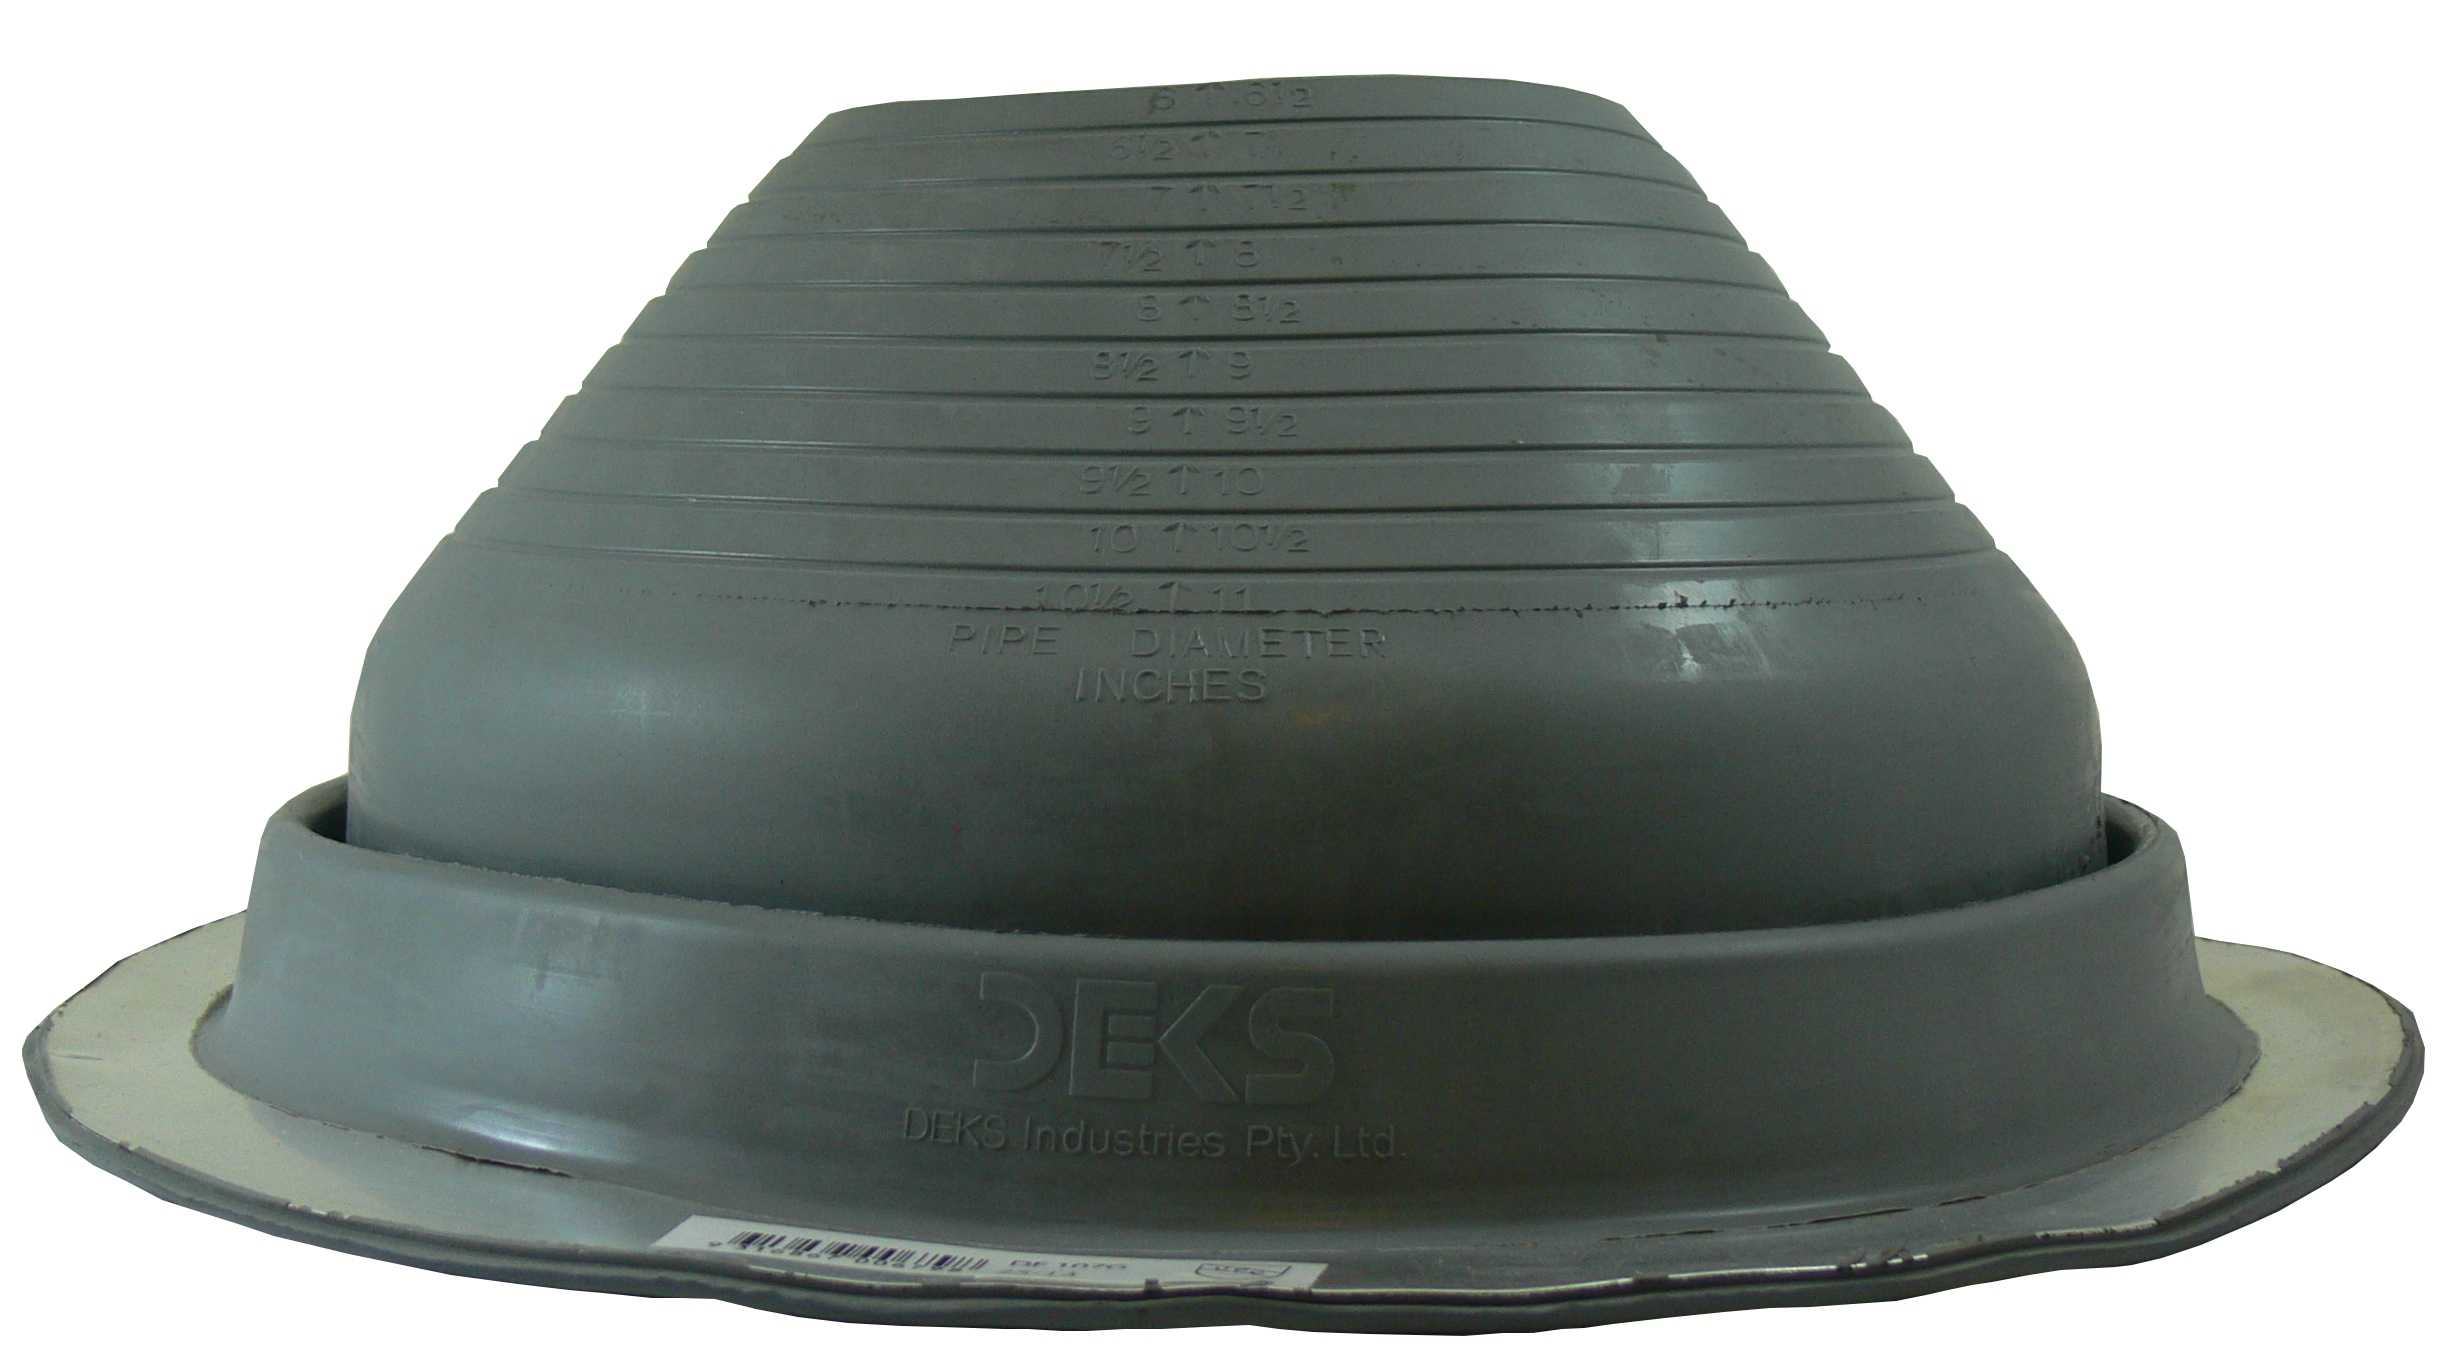 DEKTITE ROUND BASE METAL ROOFING PIPE FLASHING BOOT: #7 GRAY EPDM Flexible Pipe Flashing Dektite (for OD pipe sizes 6' - 11') - Metal Roof Jack Pipe Boot - Metal Roofing Pipe Flashing - Deks Dektite